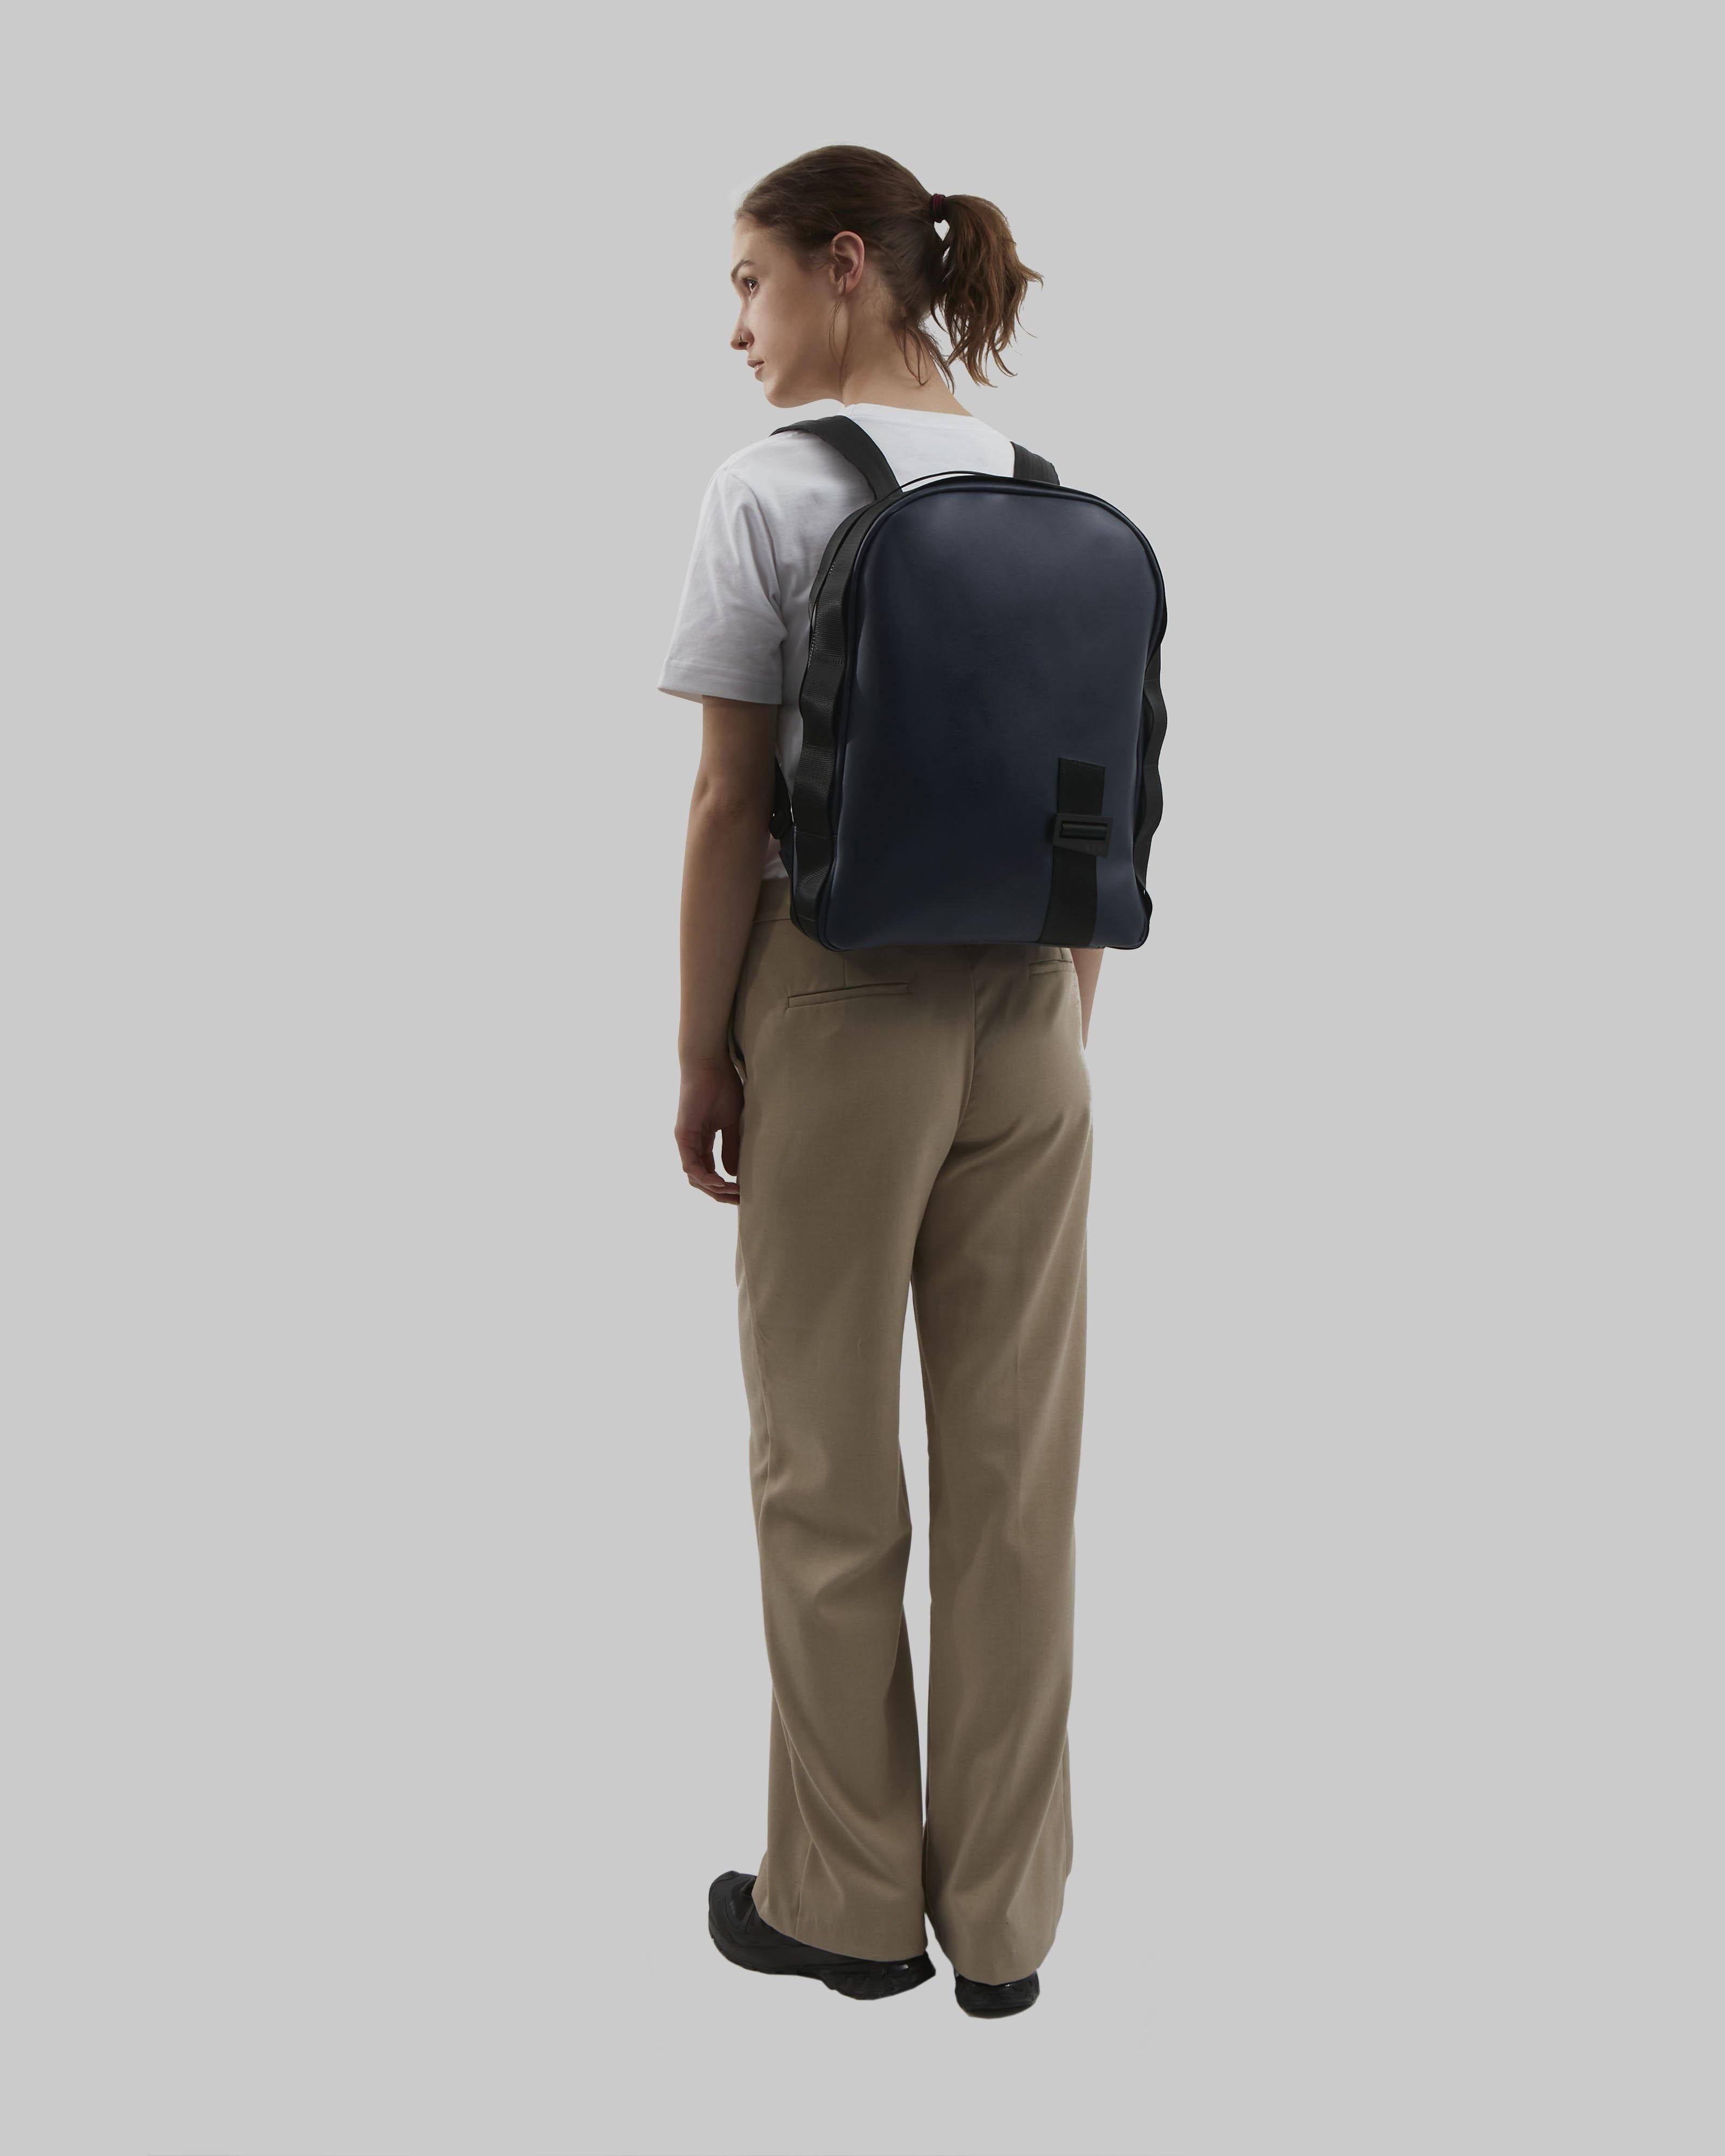 Everyday Backpack in DESSERTO®